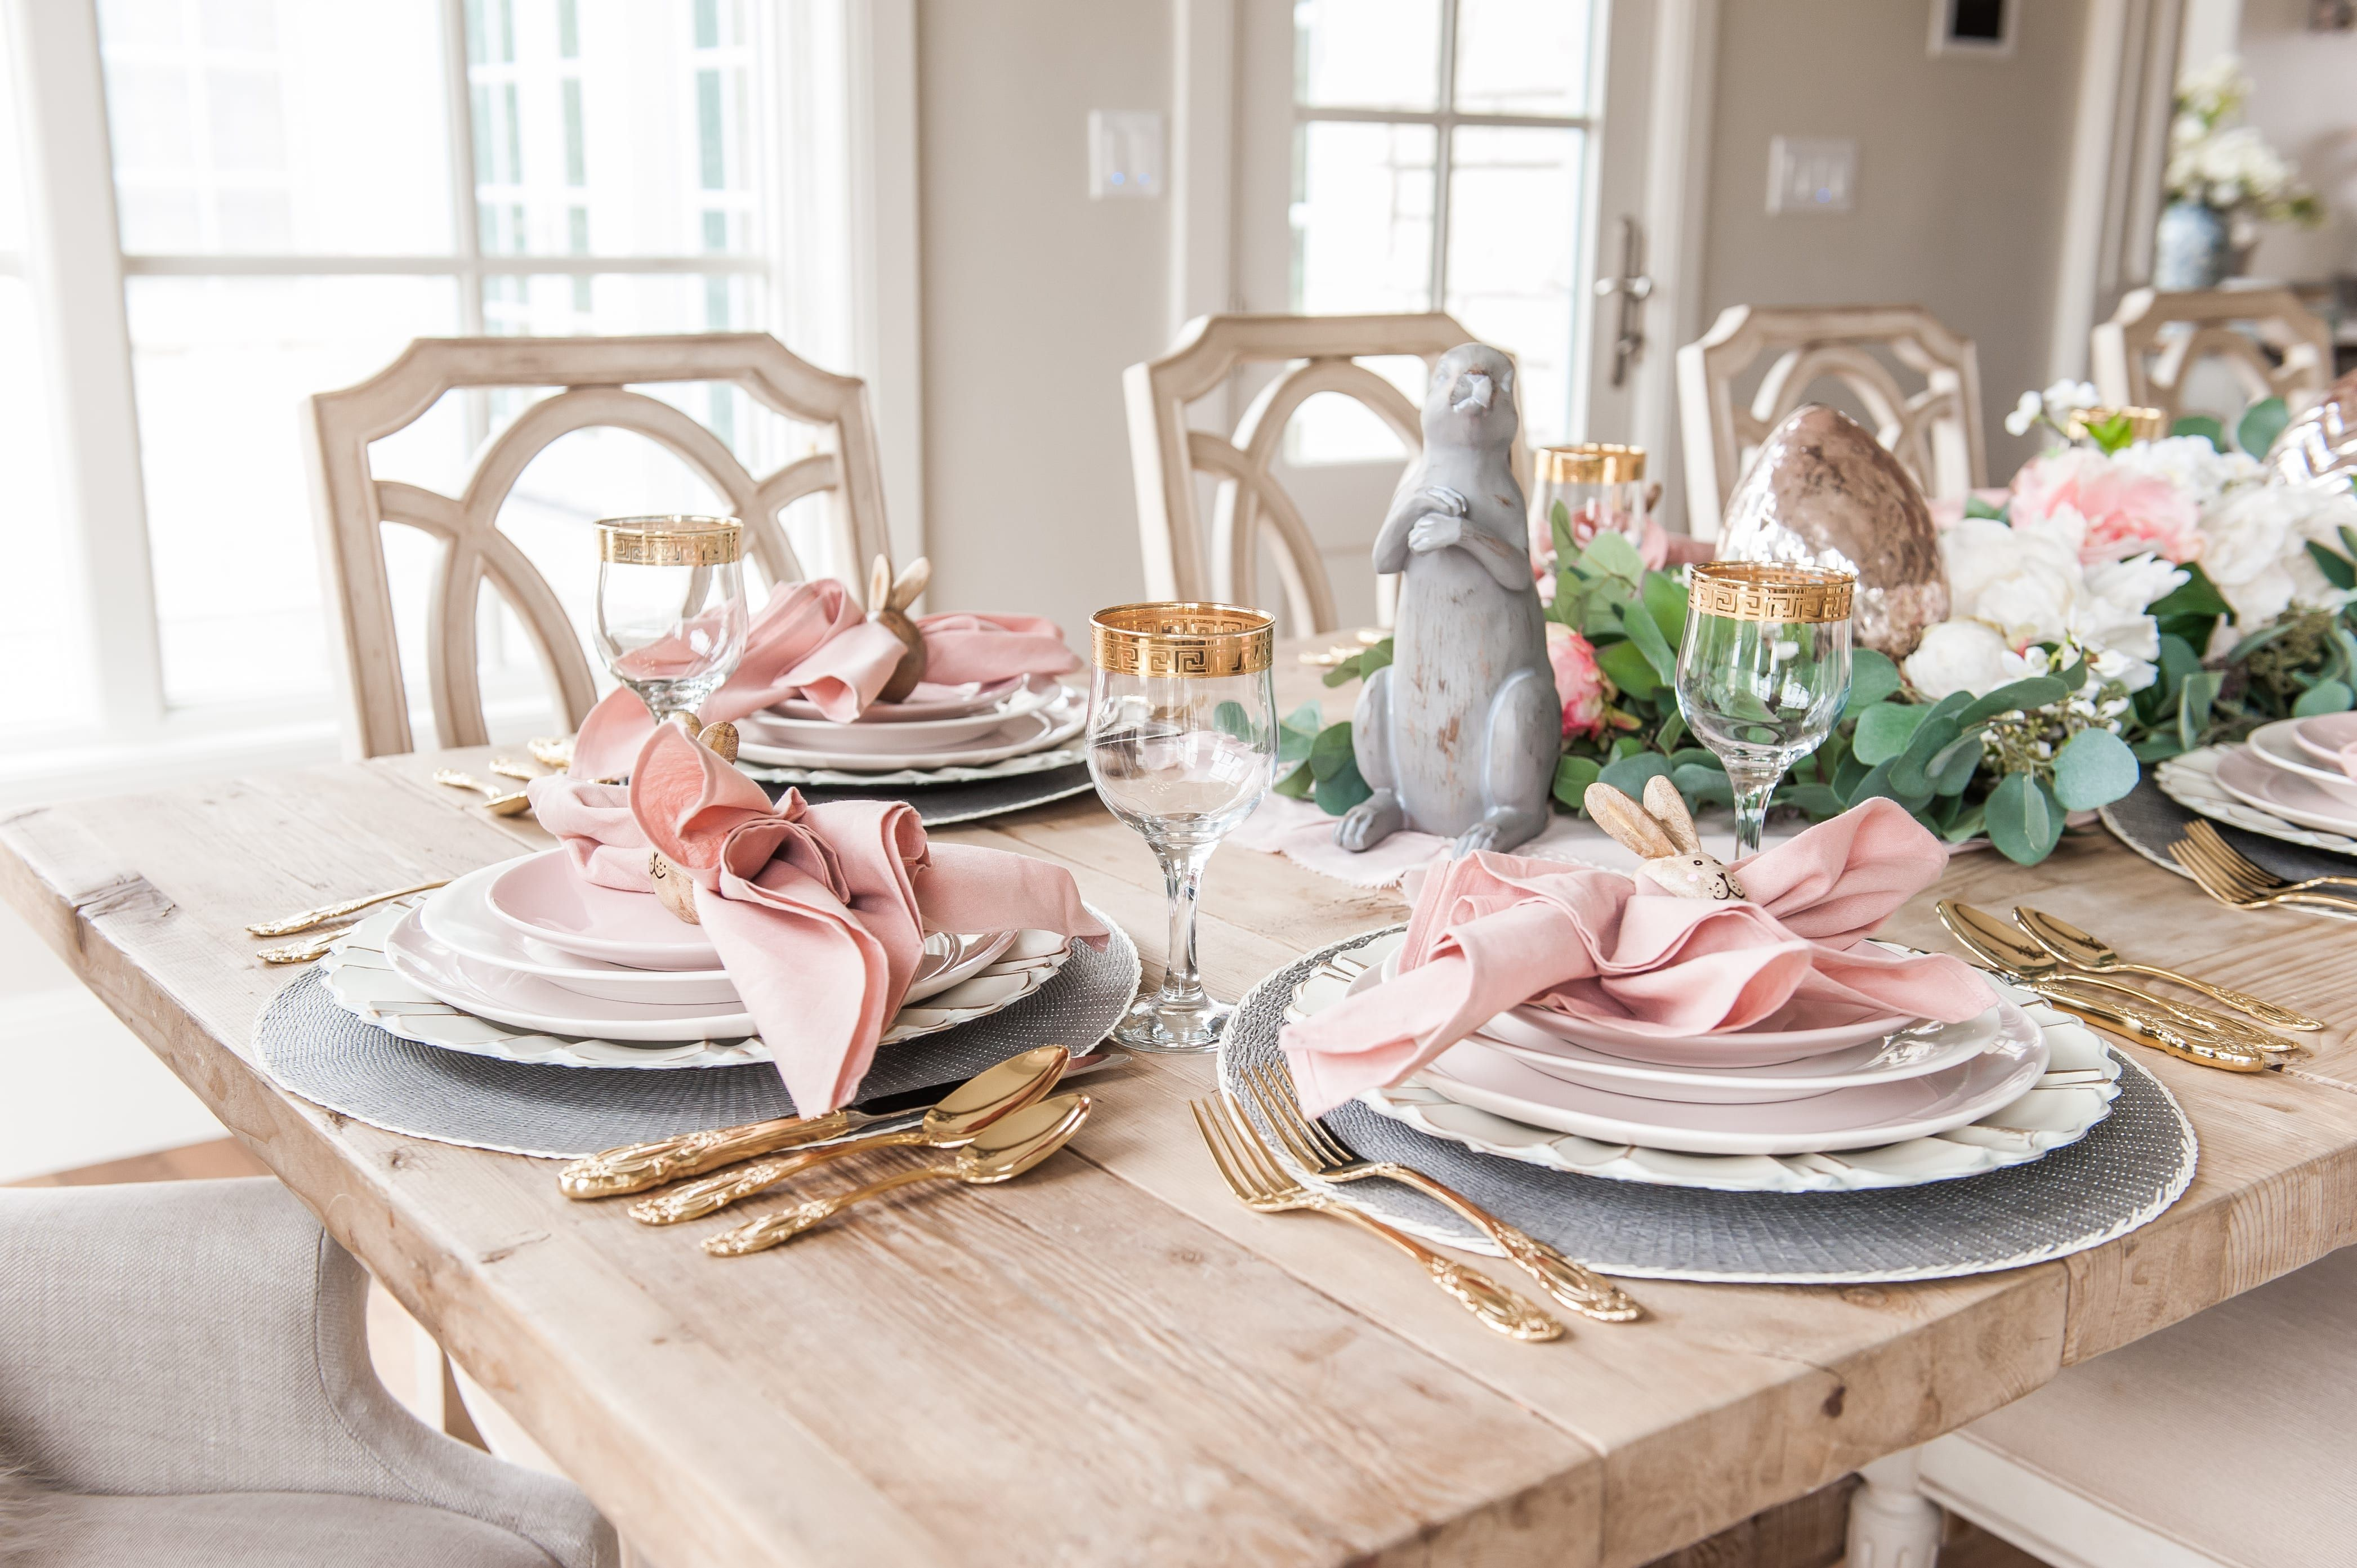 Pink And Gray Easter Tablescape Easter Dining Room Table Decor Easter Tablescapes Dining Room Table Decor